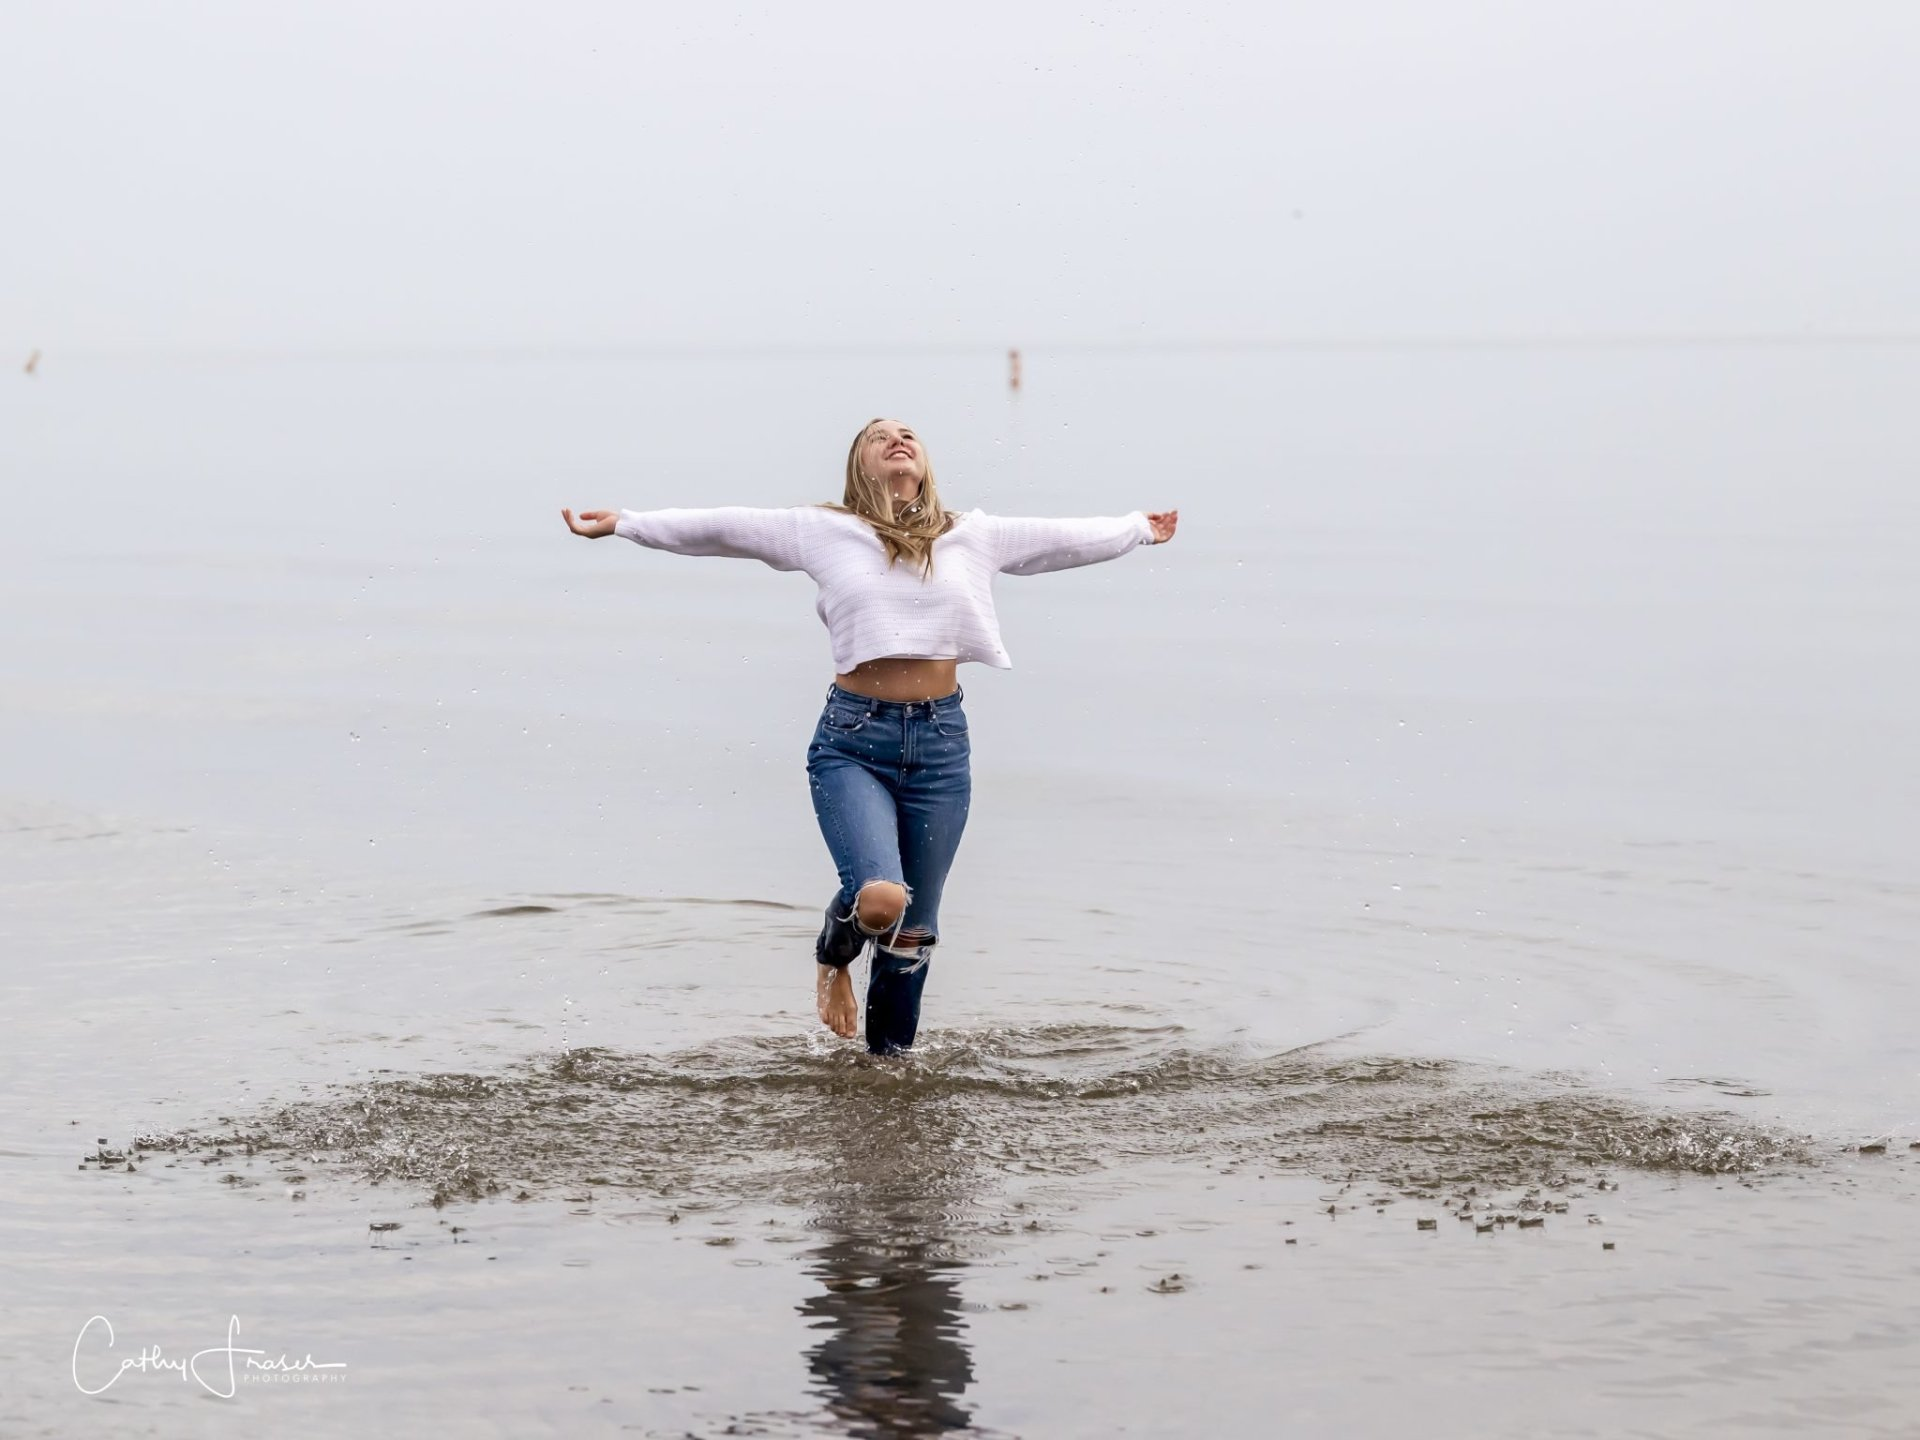 joyful Girl in the surf, water , wearing blue jeans, white sweater, Ontario beach park, rochester, ny, high school senior professional pictures